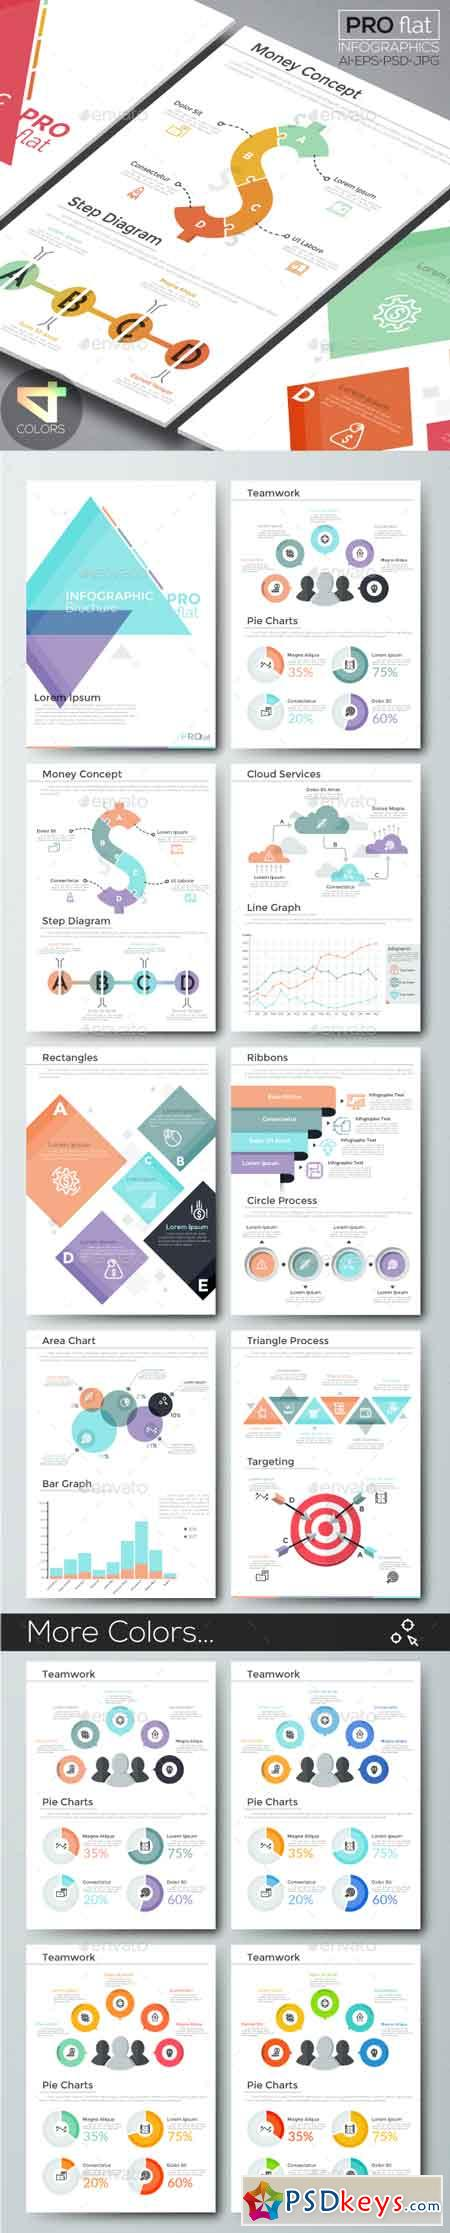 Pro Flat Infographic Brochure 10 (4 Versions) 20181940